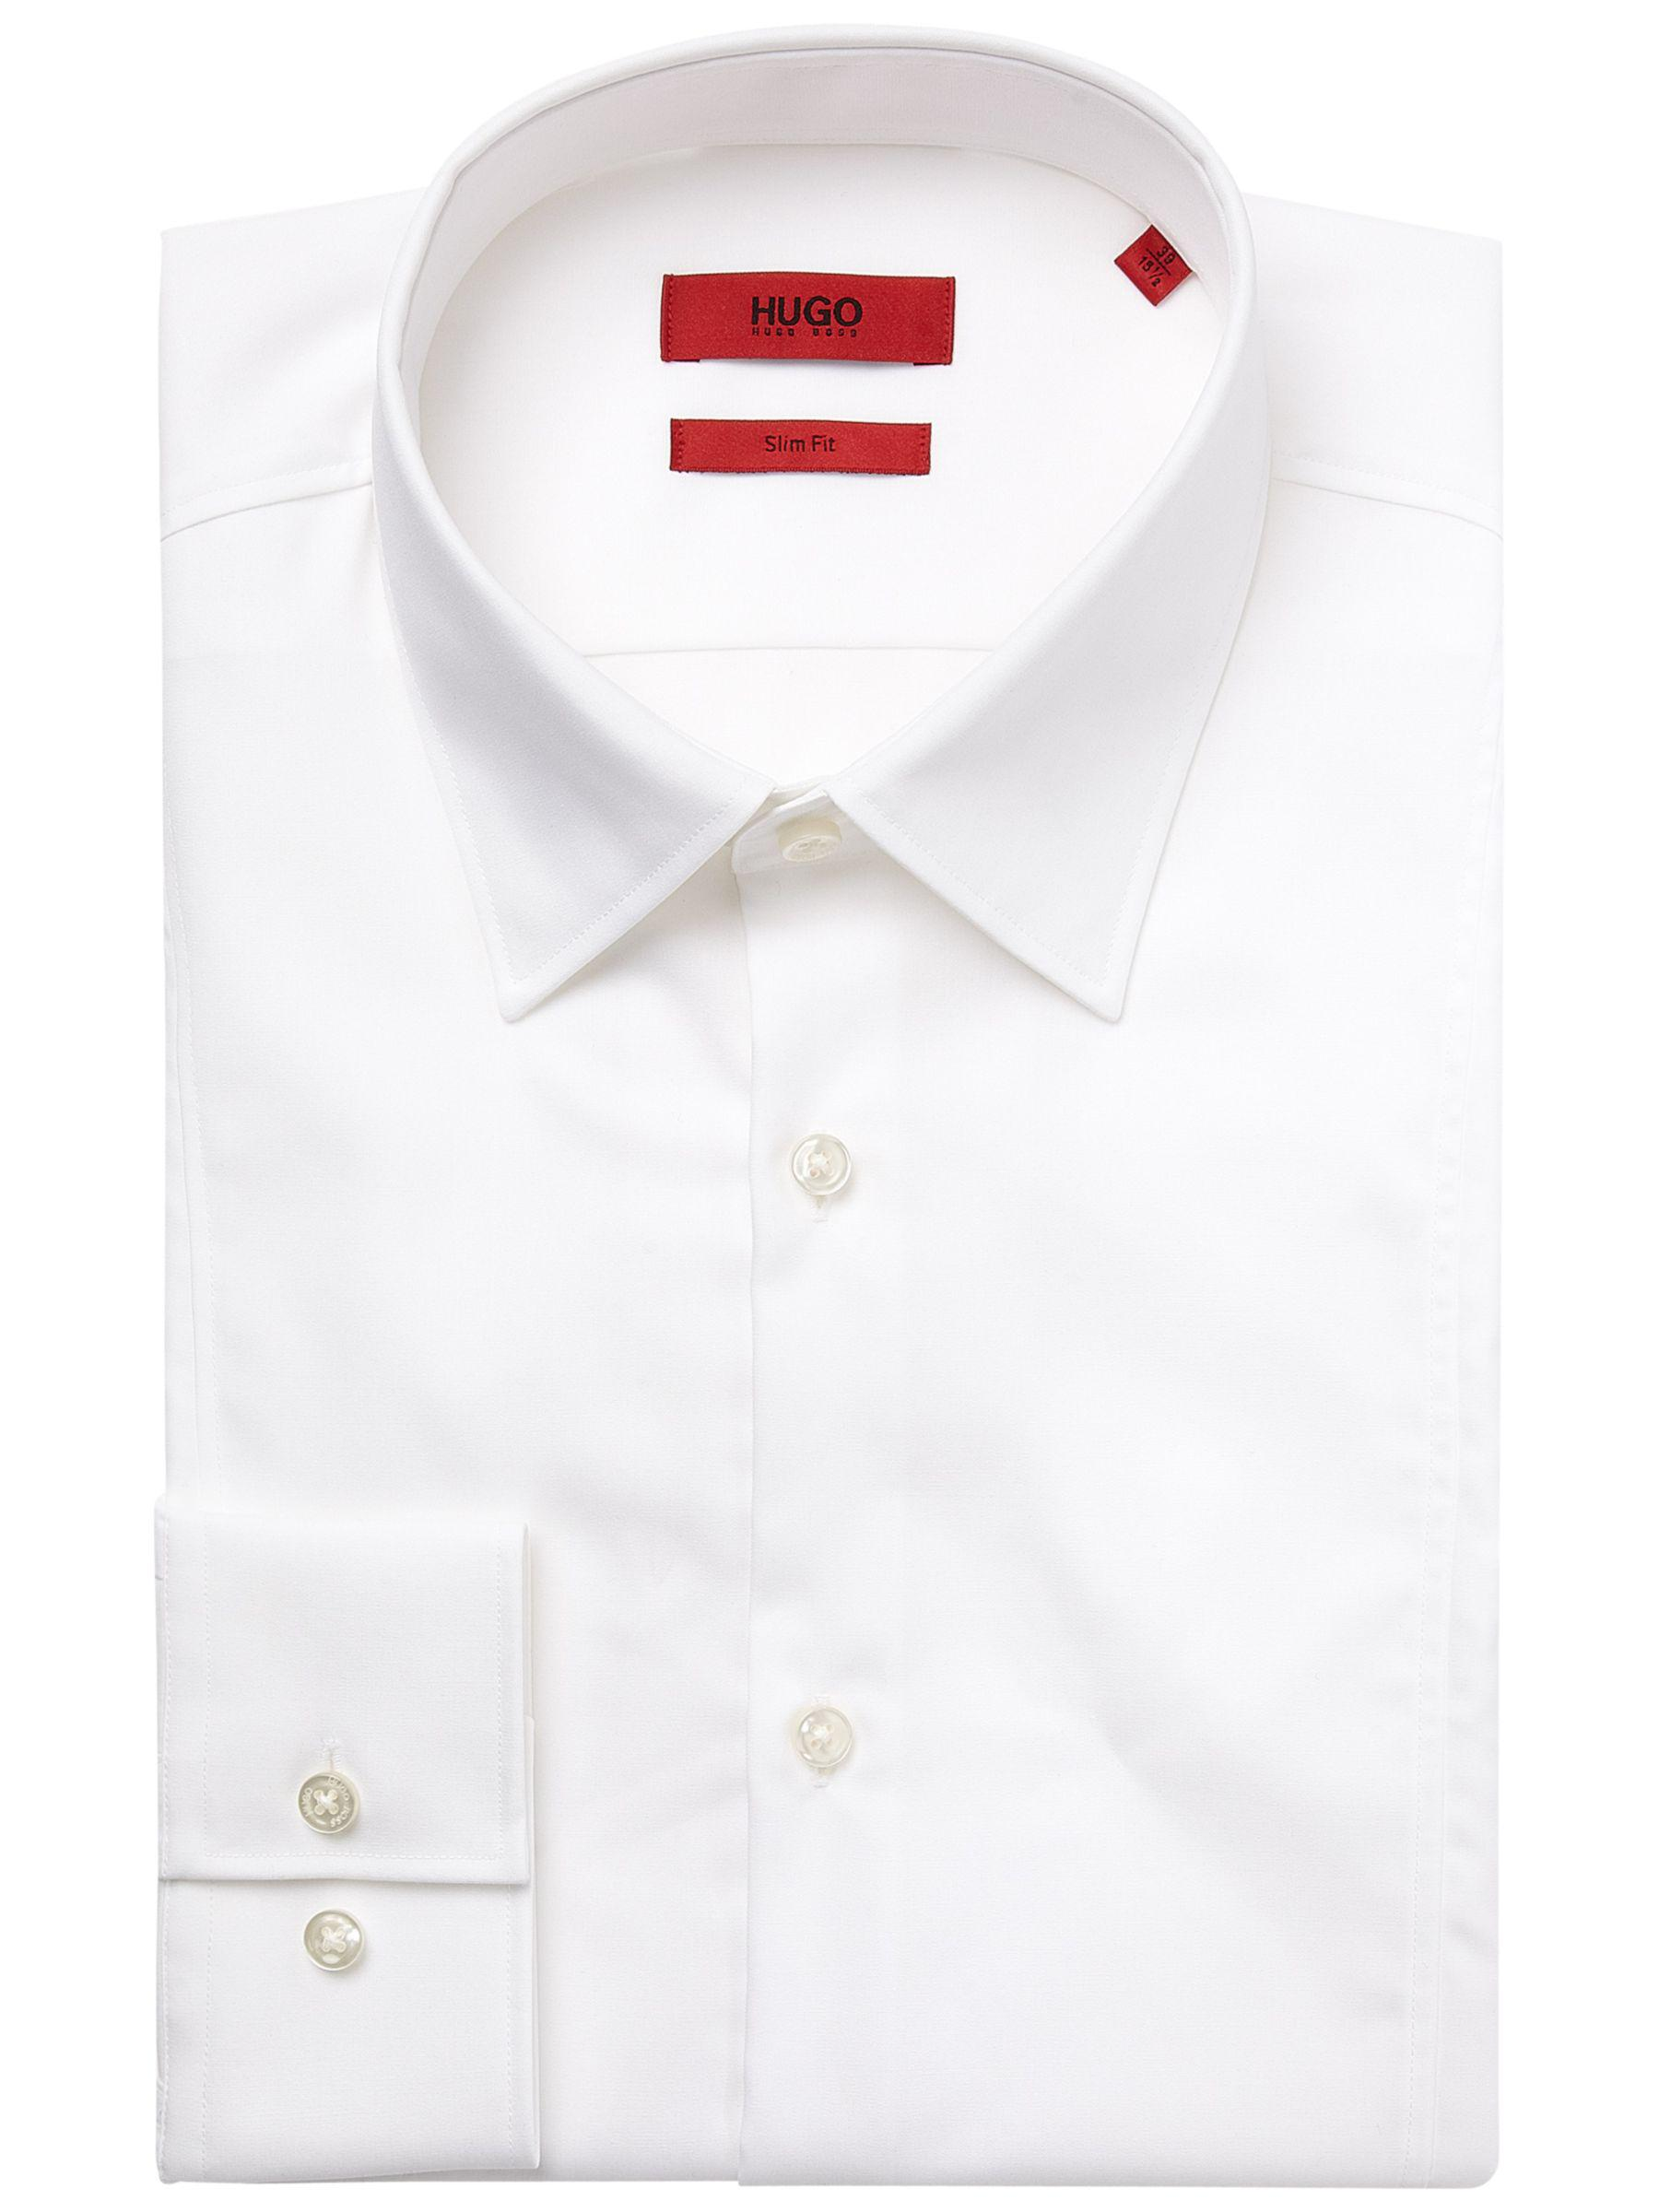 8cfd6471 BOSS Hugo By C-phillo Slim Fit Shirt in White for Men - Lyst